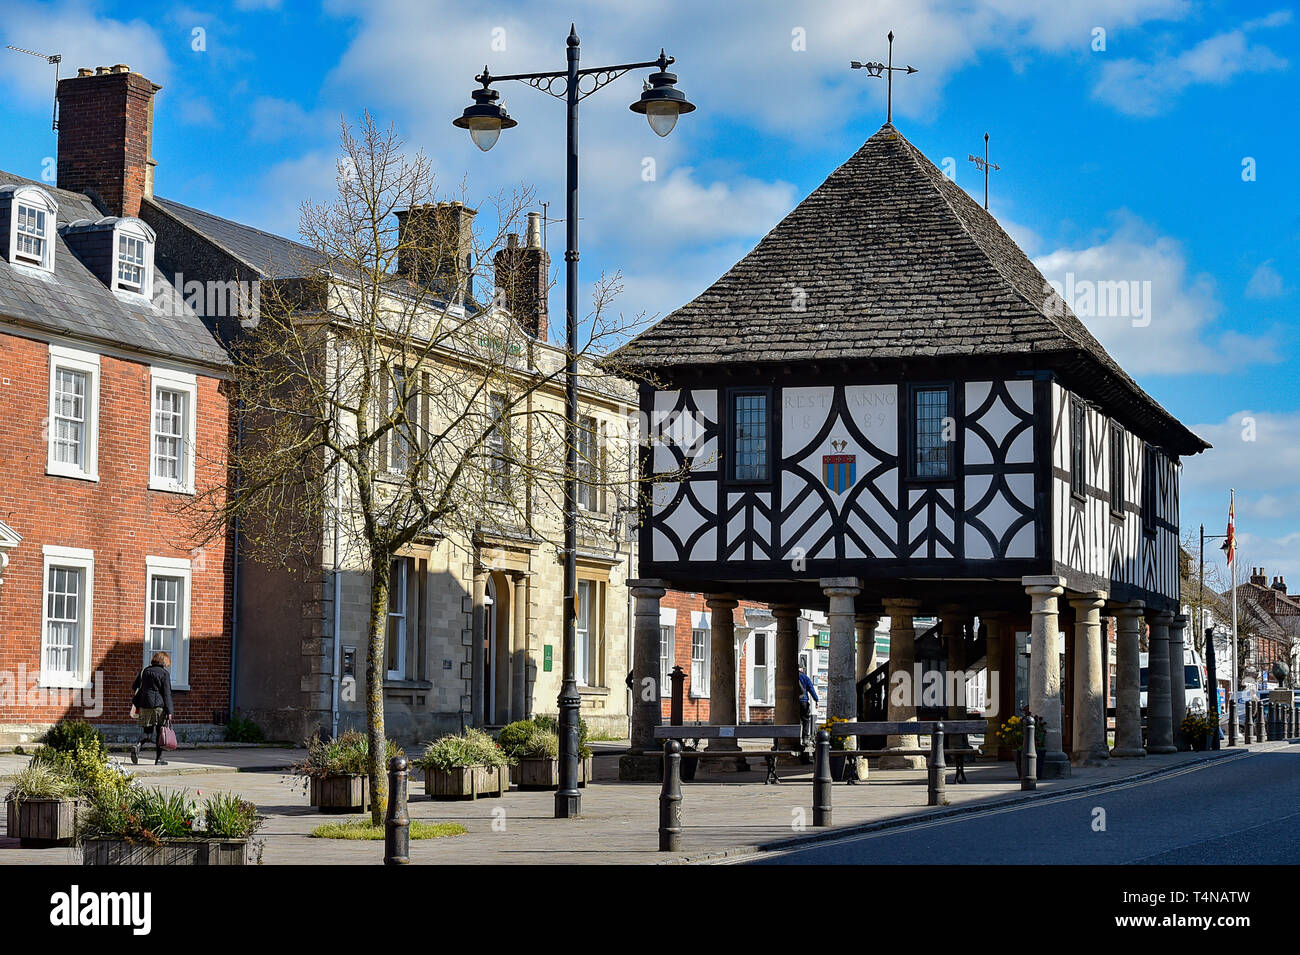 Looking towards the Town Hall Museum in Royal Wootton Bassett Wiltshire 2019 Stock Photo